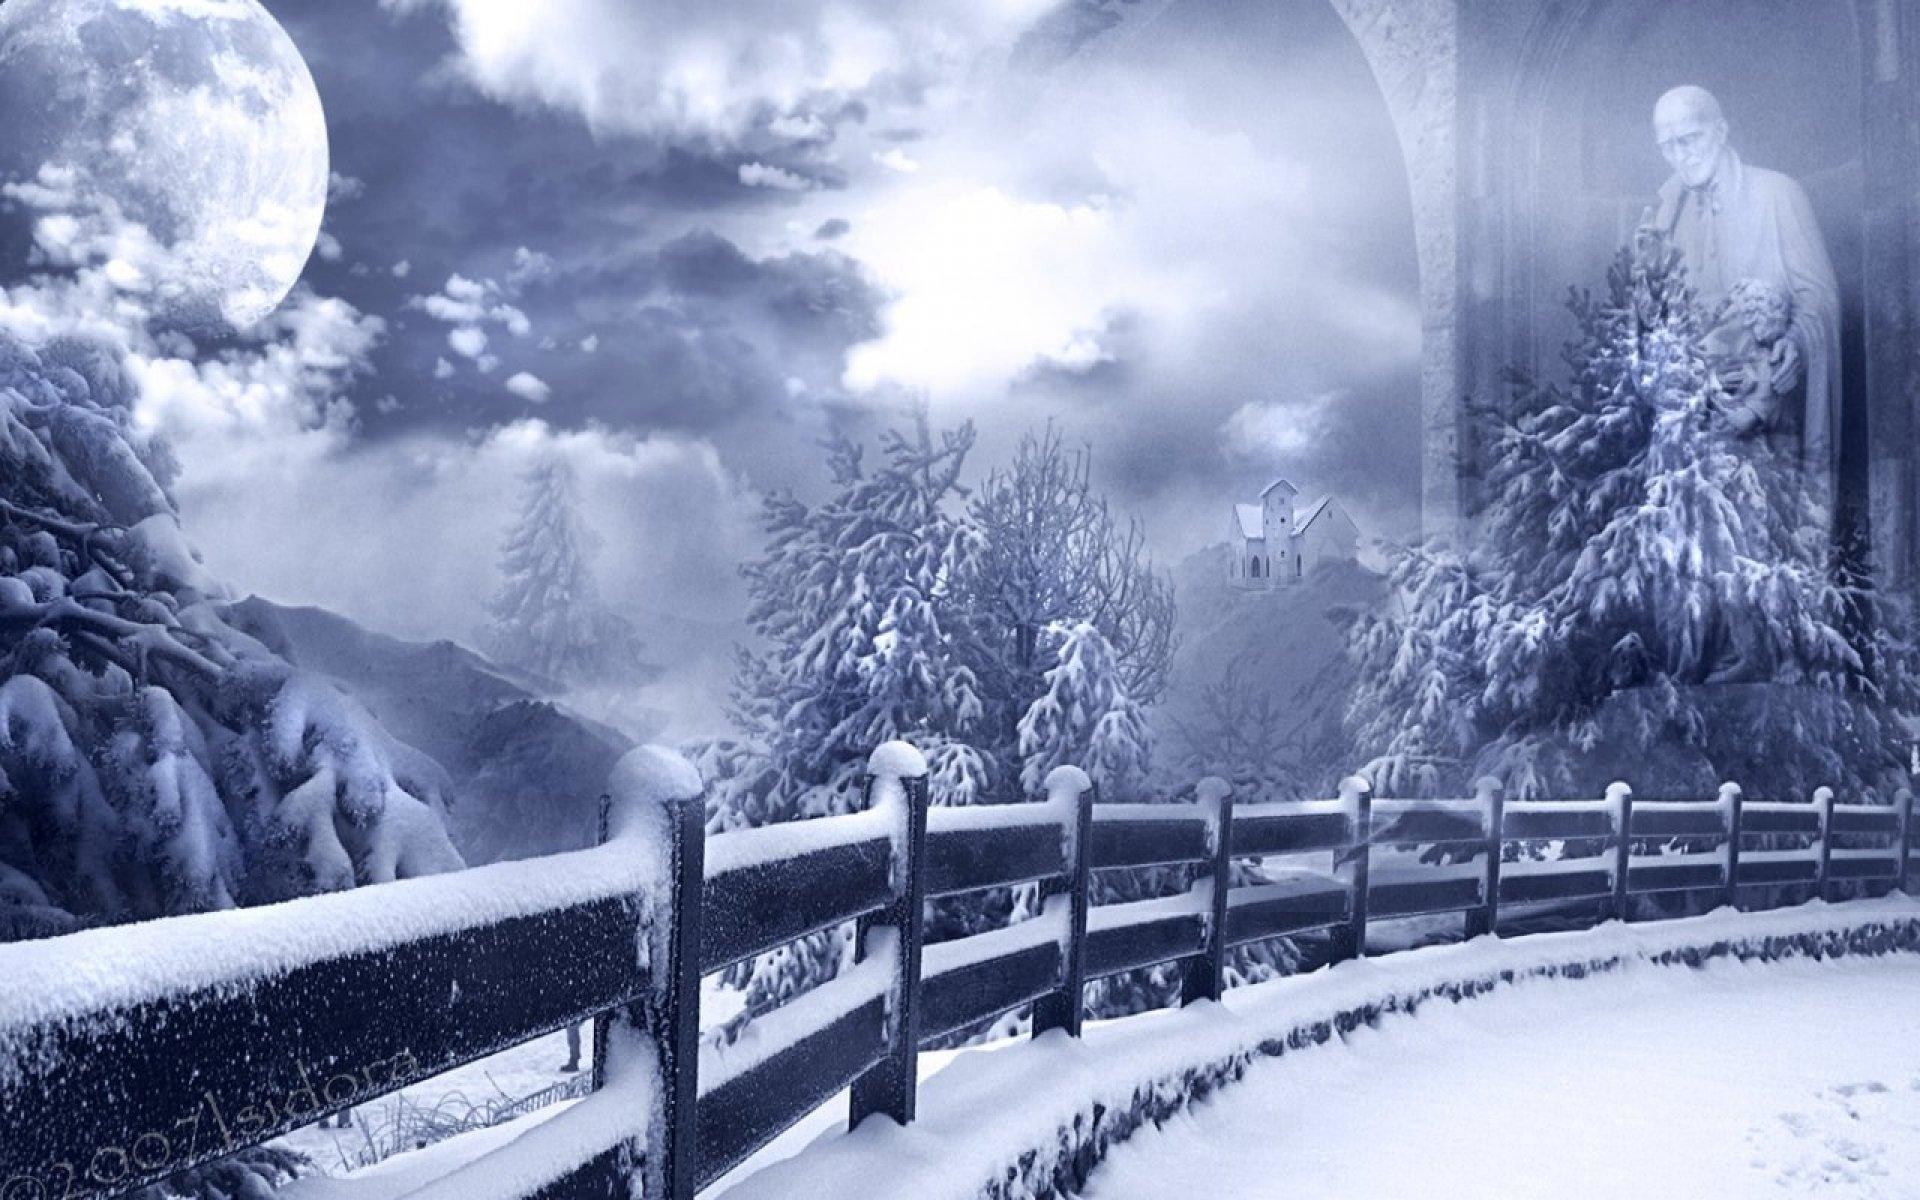 Winter Nature Wallpapers Hd Background Wallpaper 24 HD Wallpapers .